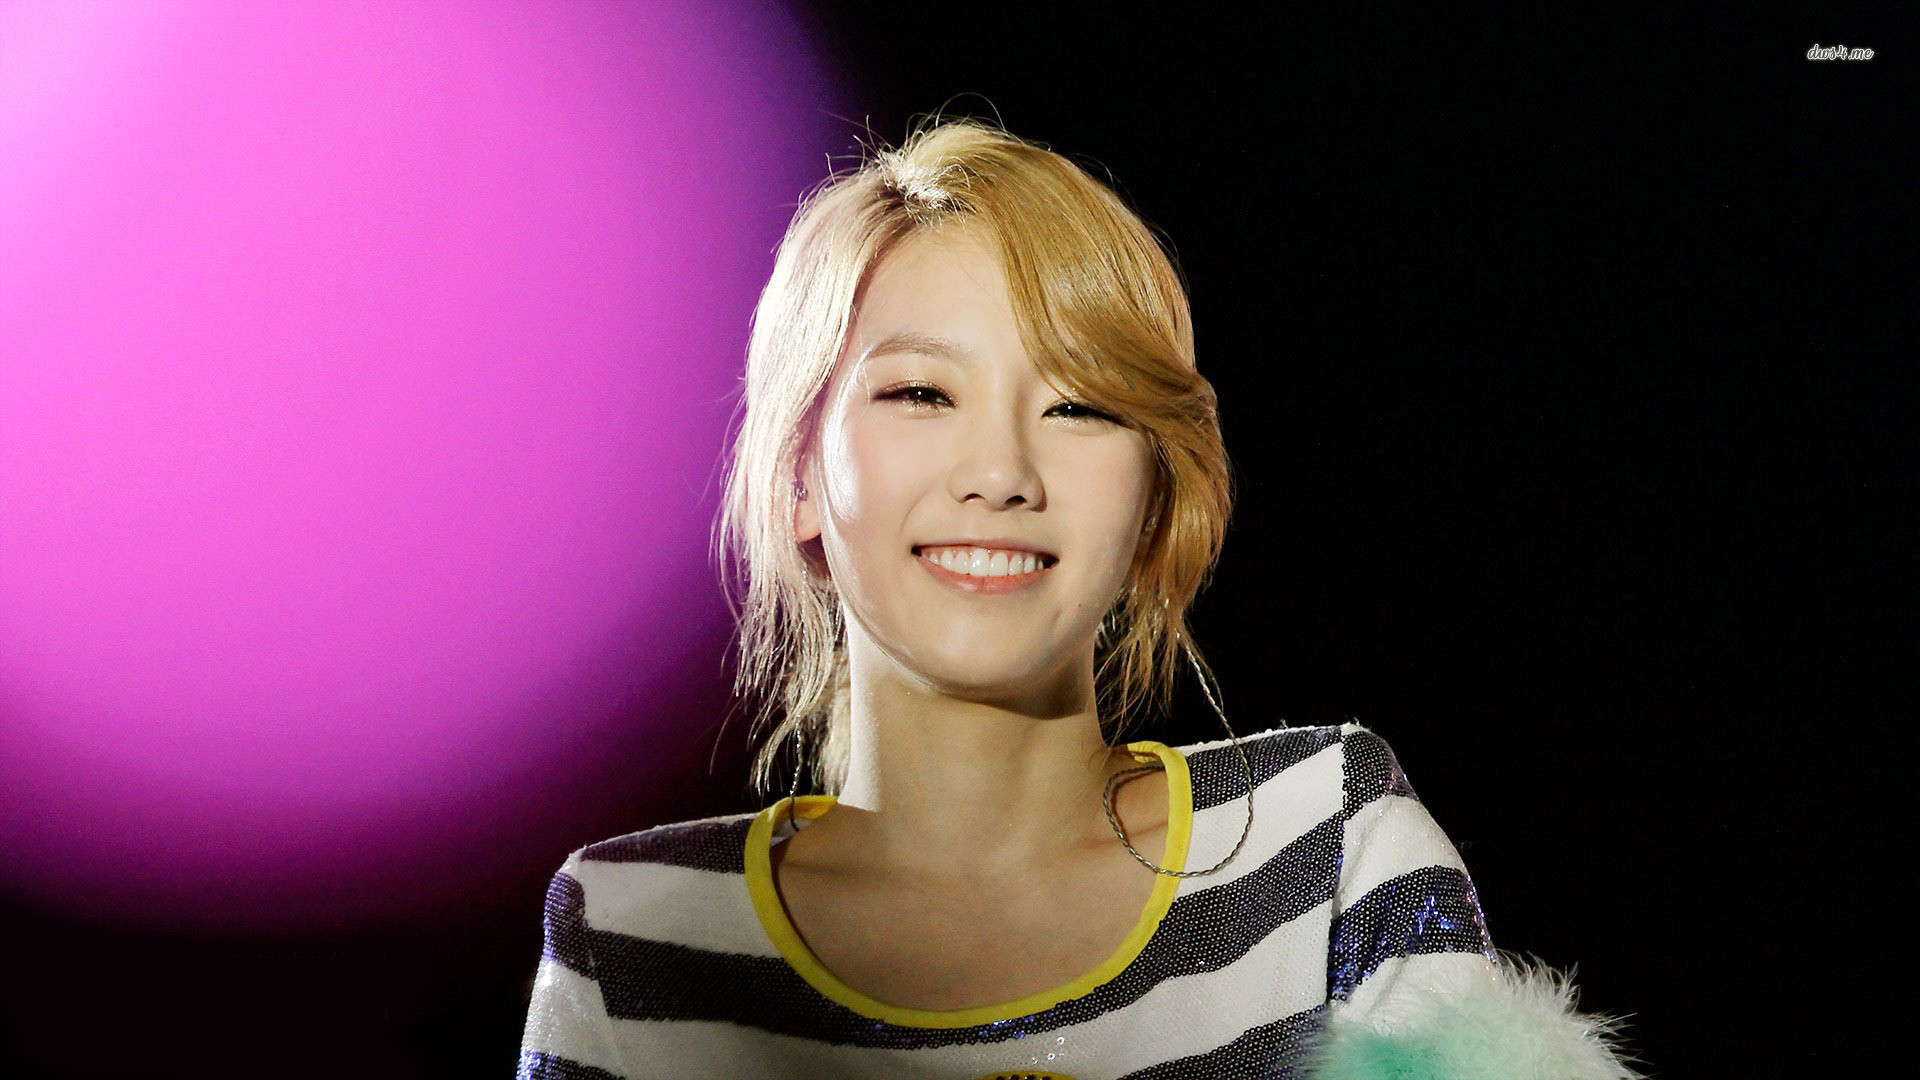 Res: 1920x1080, Smile Kim Tae Yeon SNSD Wallpaper 10383 Hdwidescreens